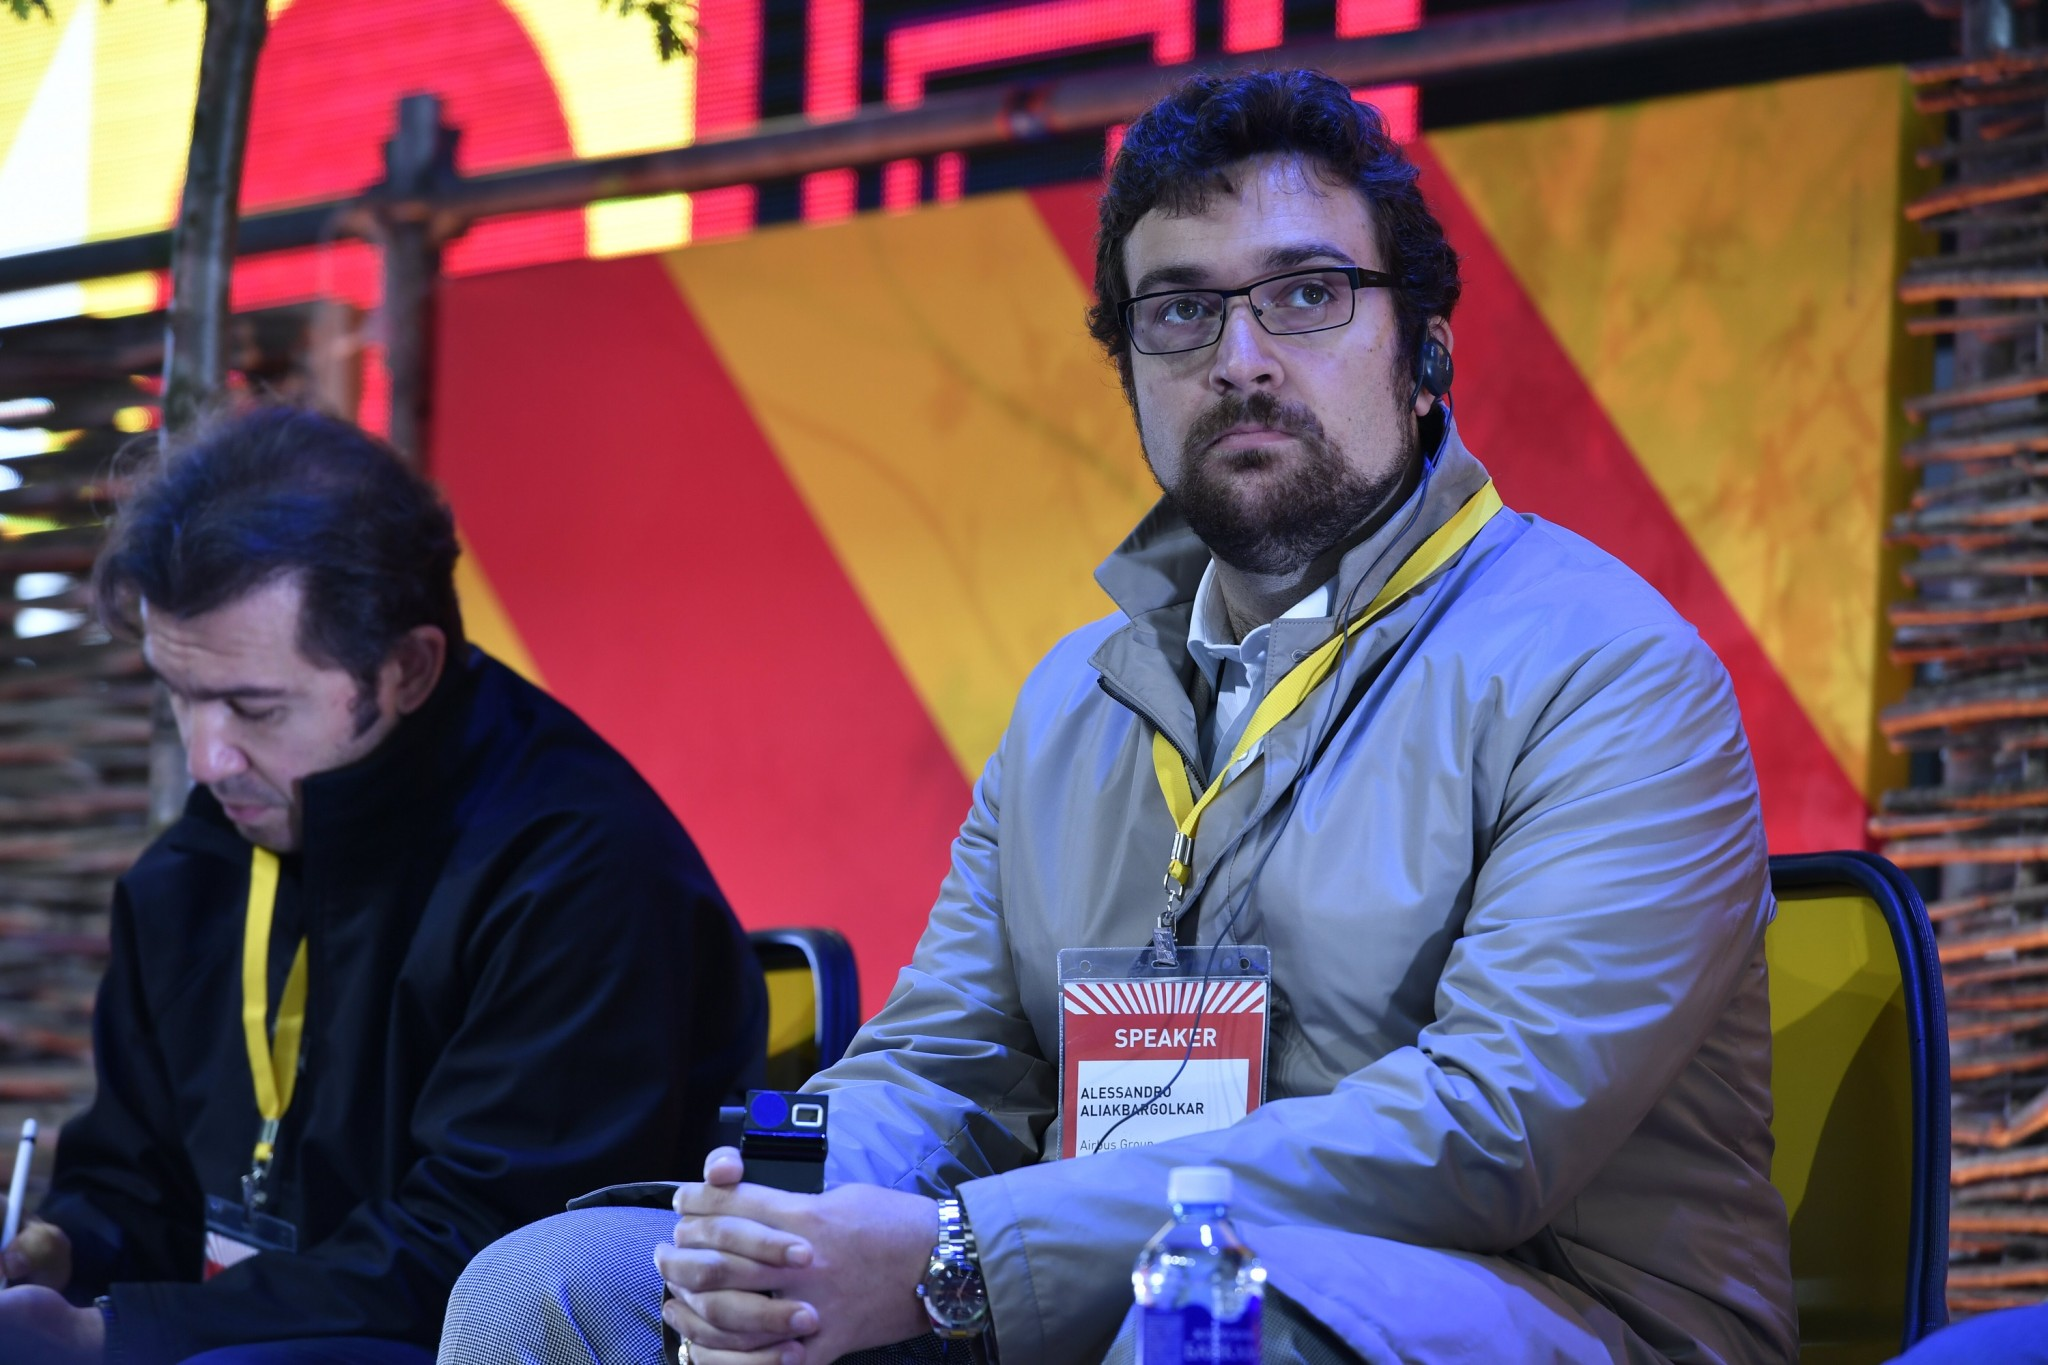 Alessandro Golkar, a Space Center professor who is currently taking a two-year sabbatical to serve as Vice President of the Concurrent Engineering, Technology Planning and Roadmapping unit of multinational aerospace and defense giant Airbus, pictured during a Startup Village panel on market competition.